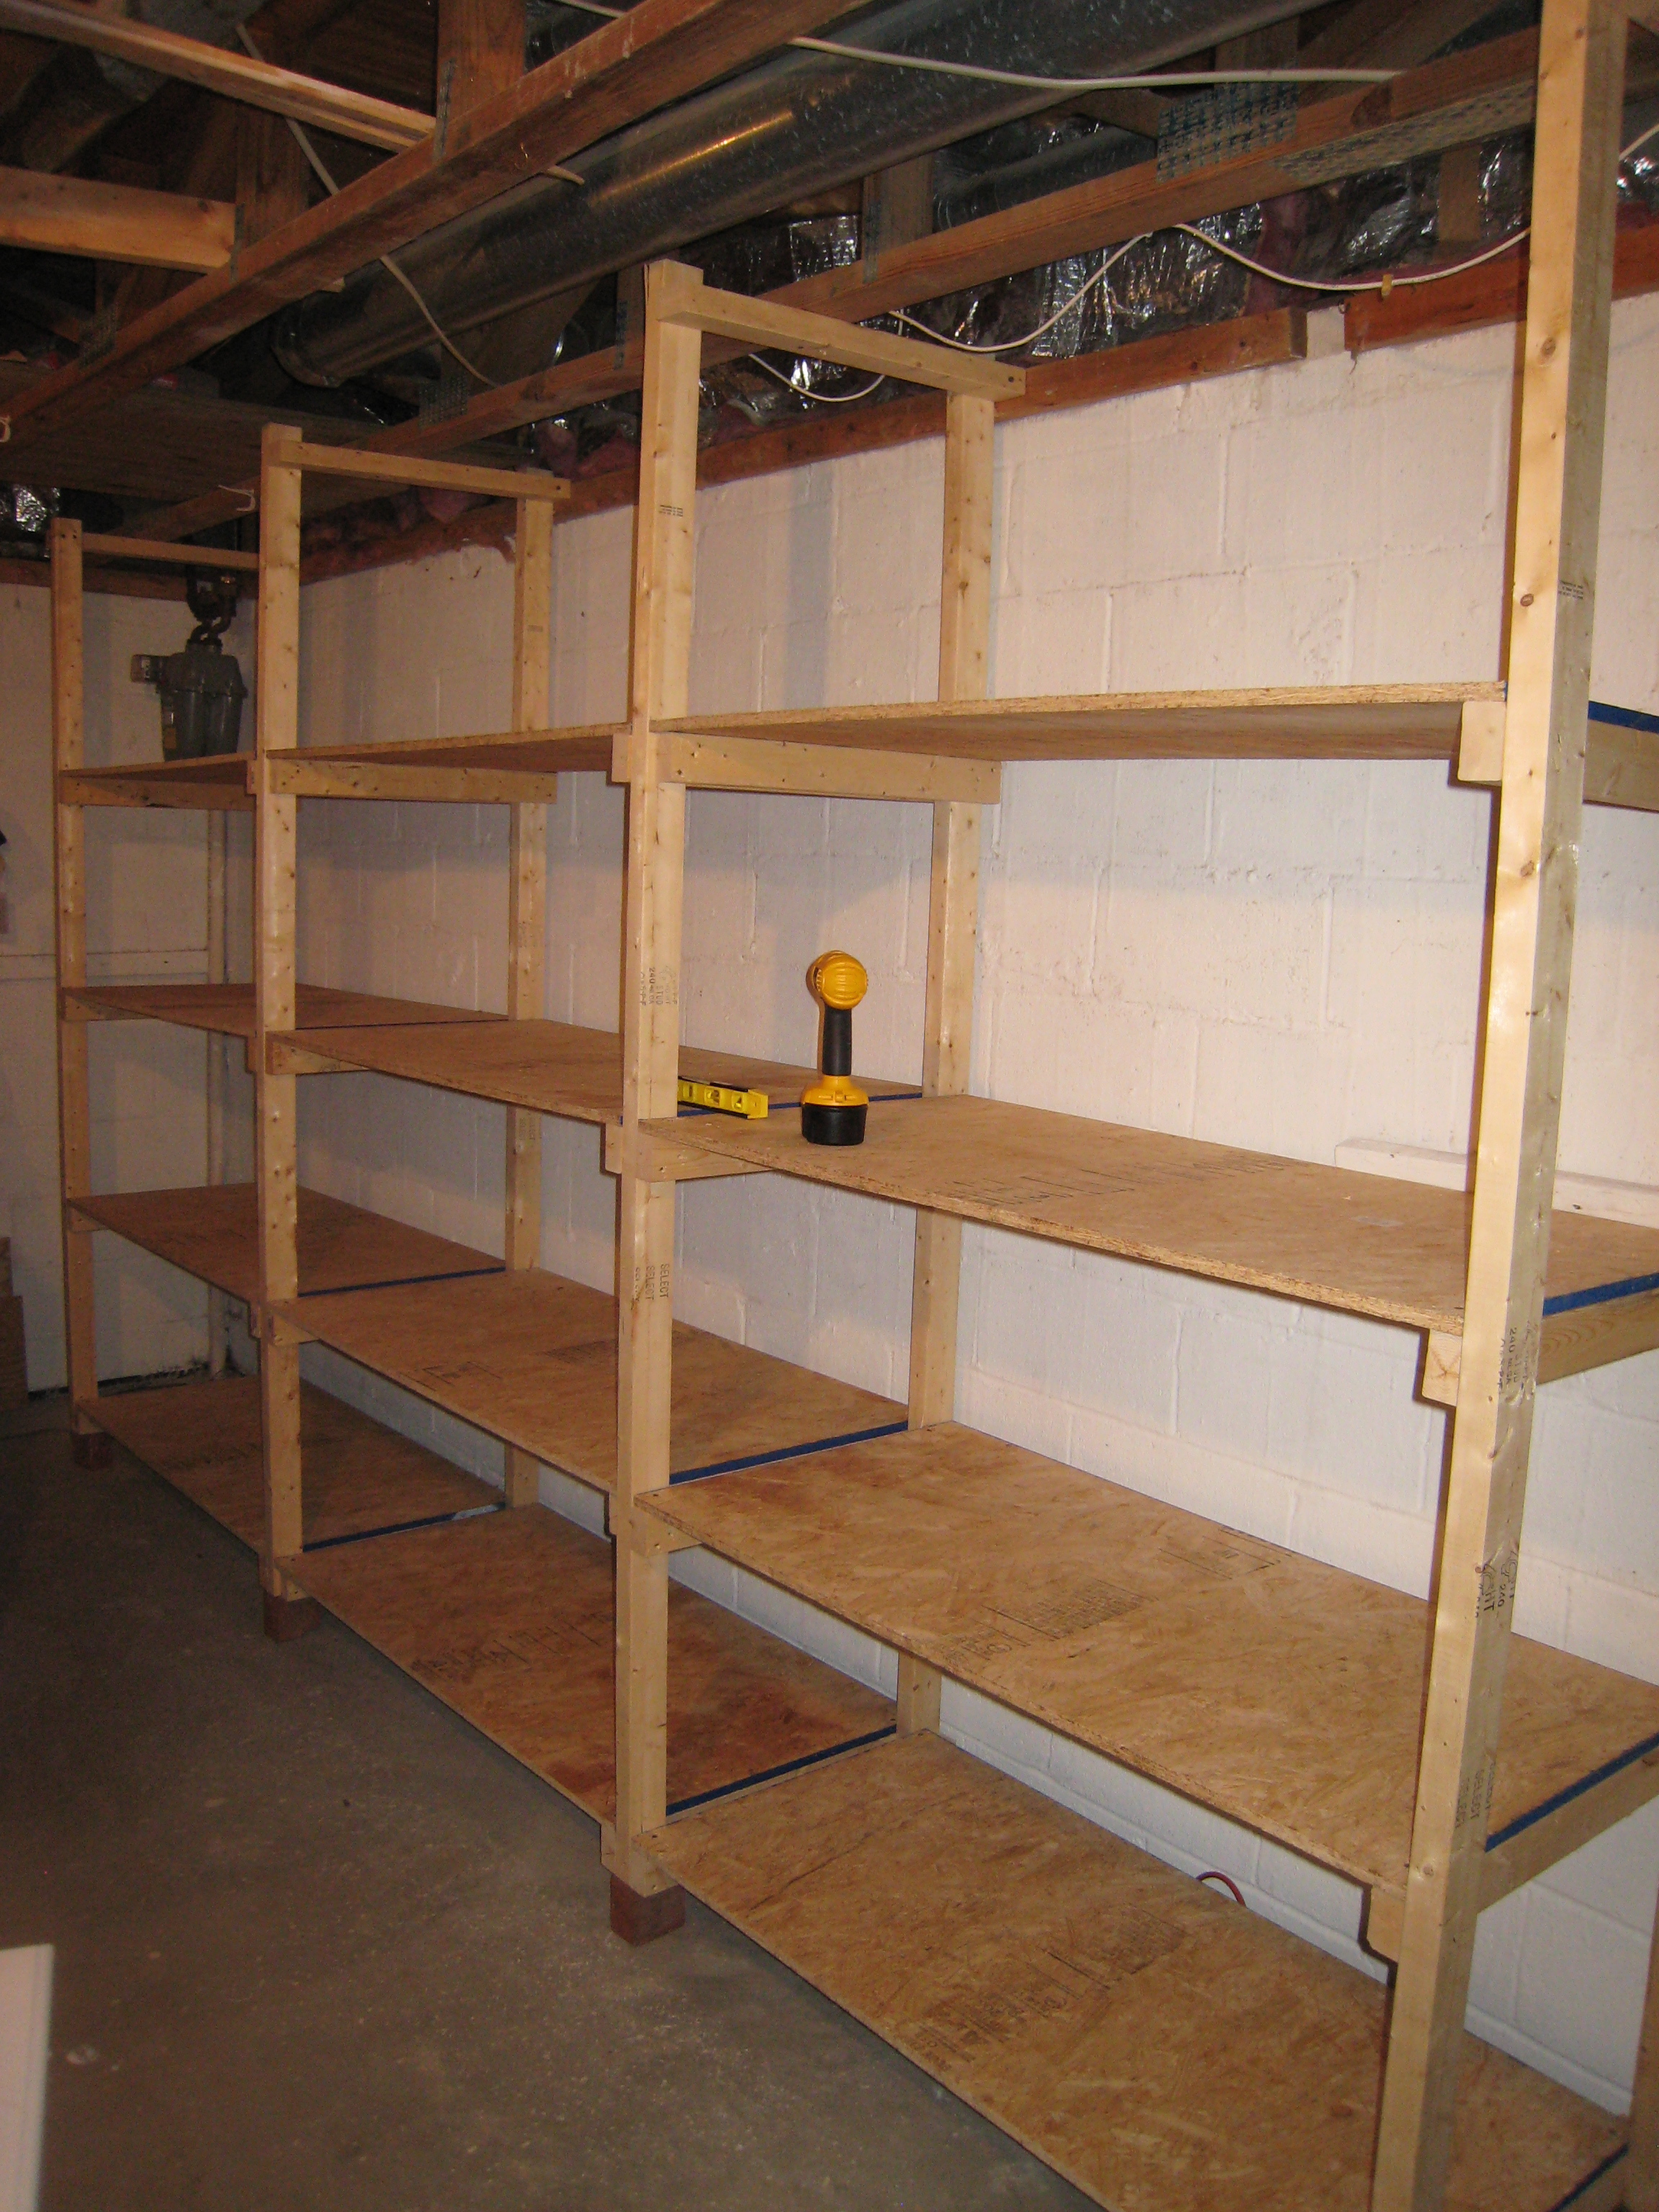 : kayak storage rack plans | ehow, Do it yourself: kayak storage ...